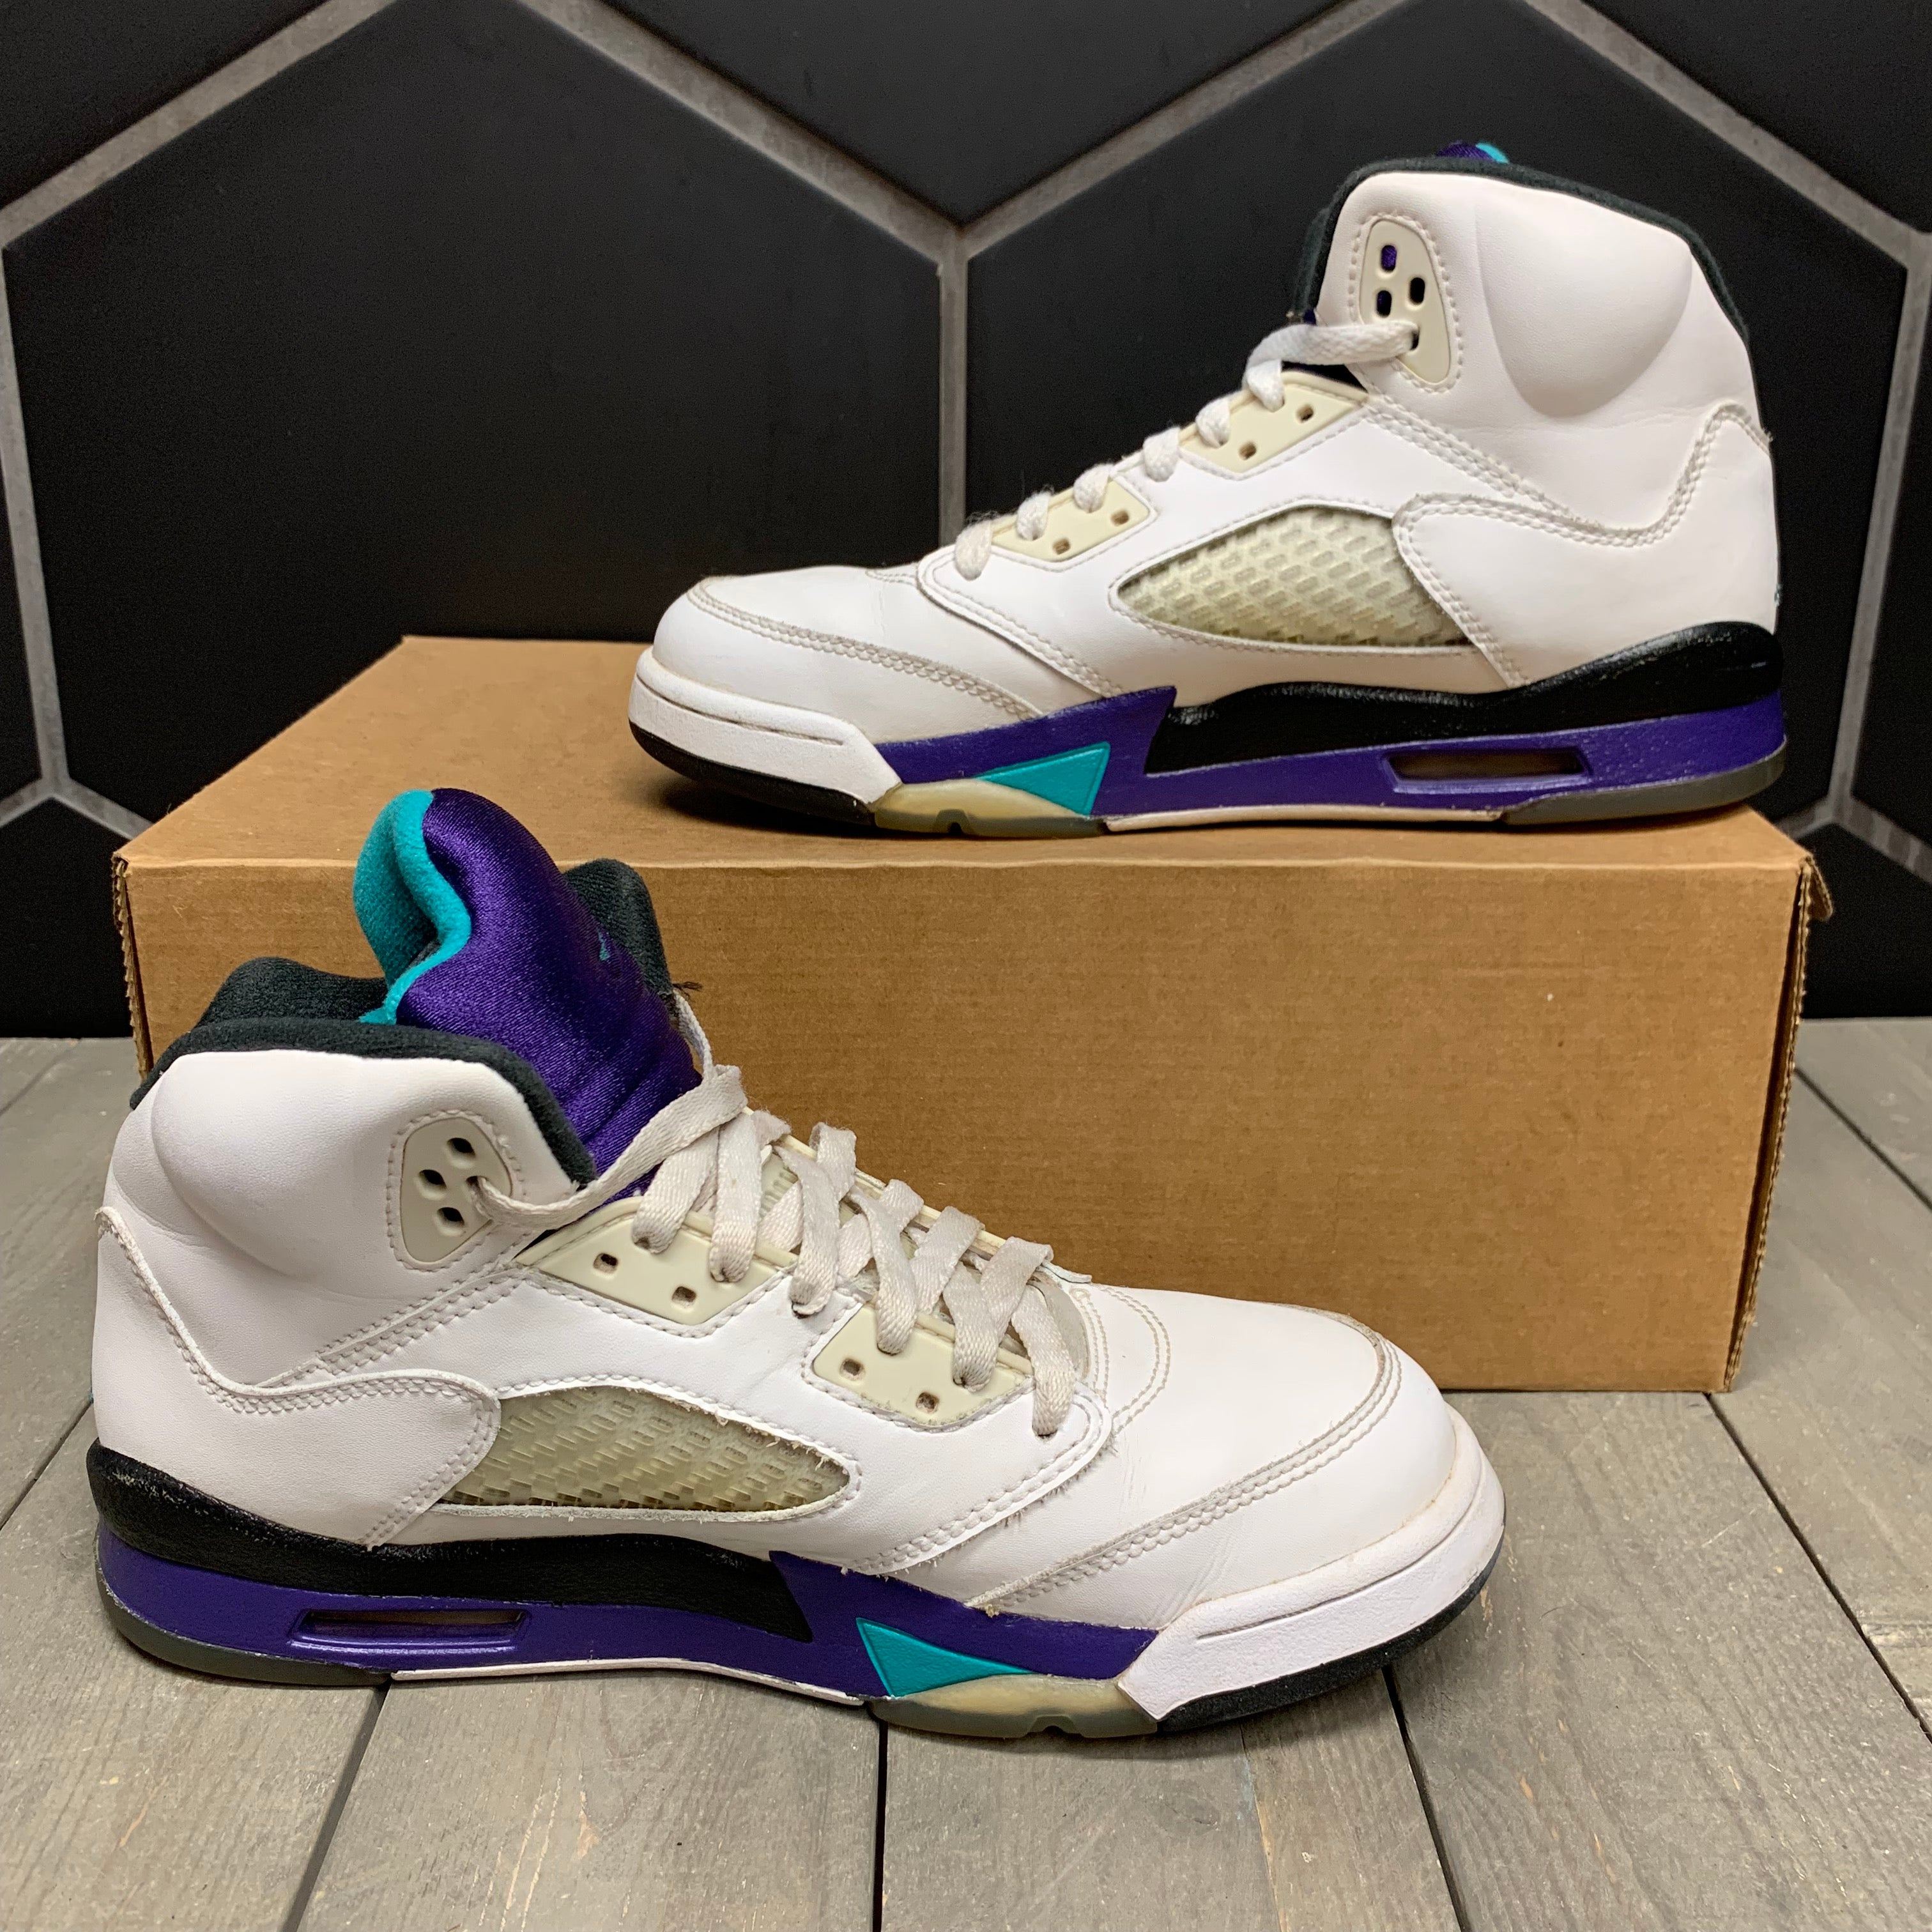 Used W/O Box! 2013 Air Jordan 5 Grape GS Shoe Size 6Y